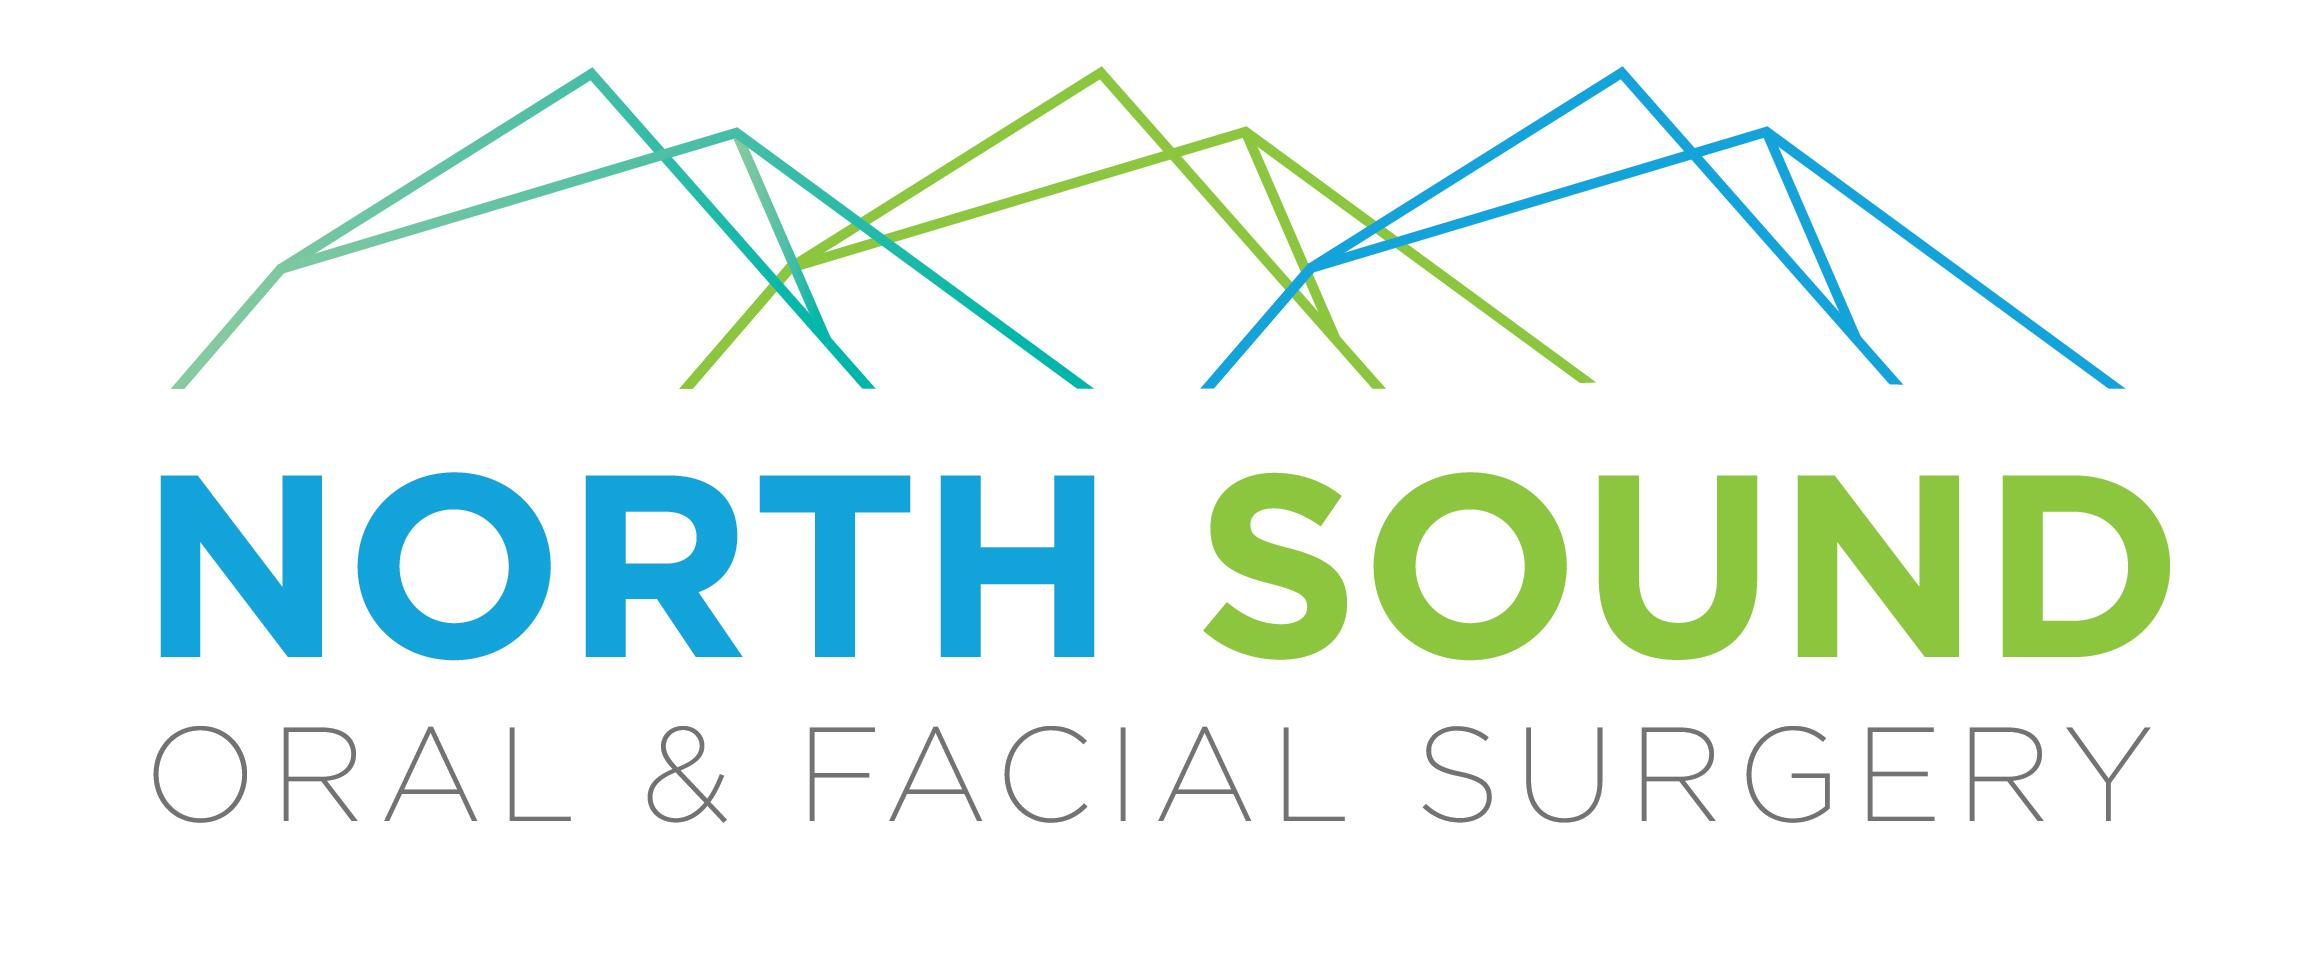 North Sound Oral & Facial Surgery in Anacortes WA